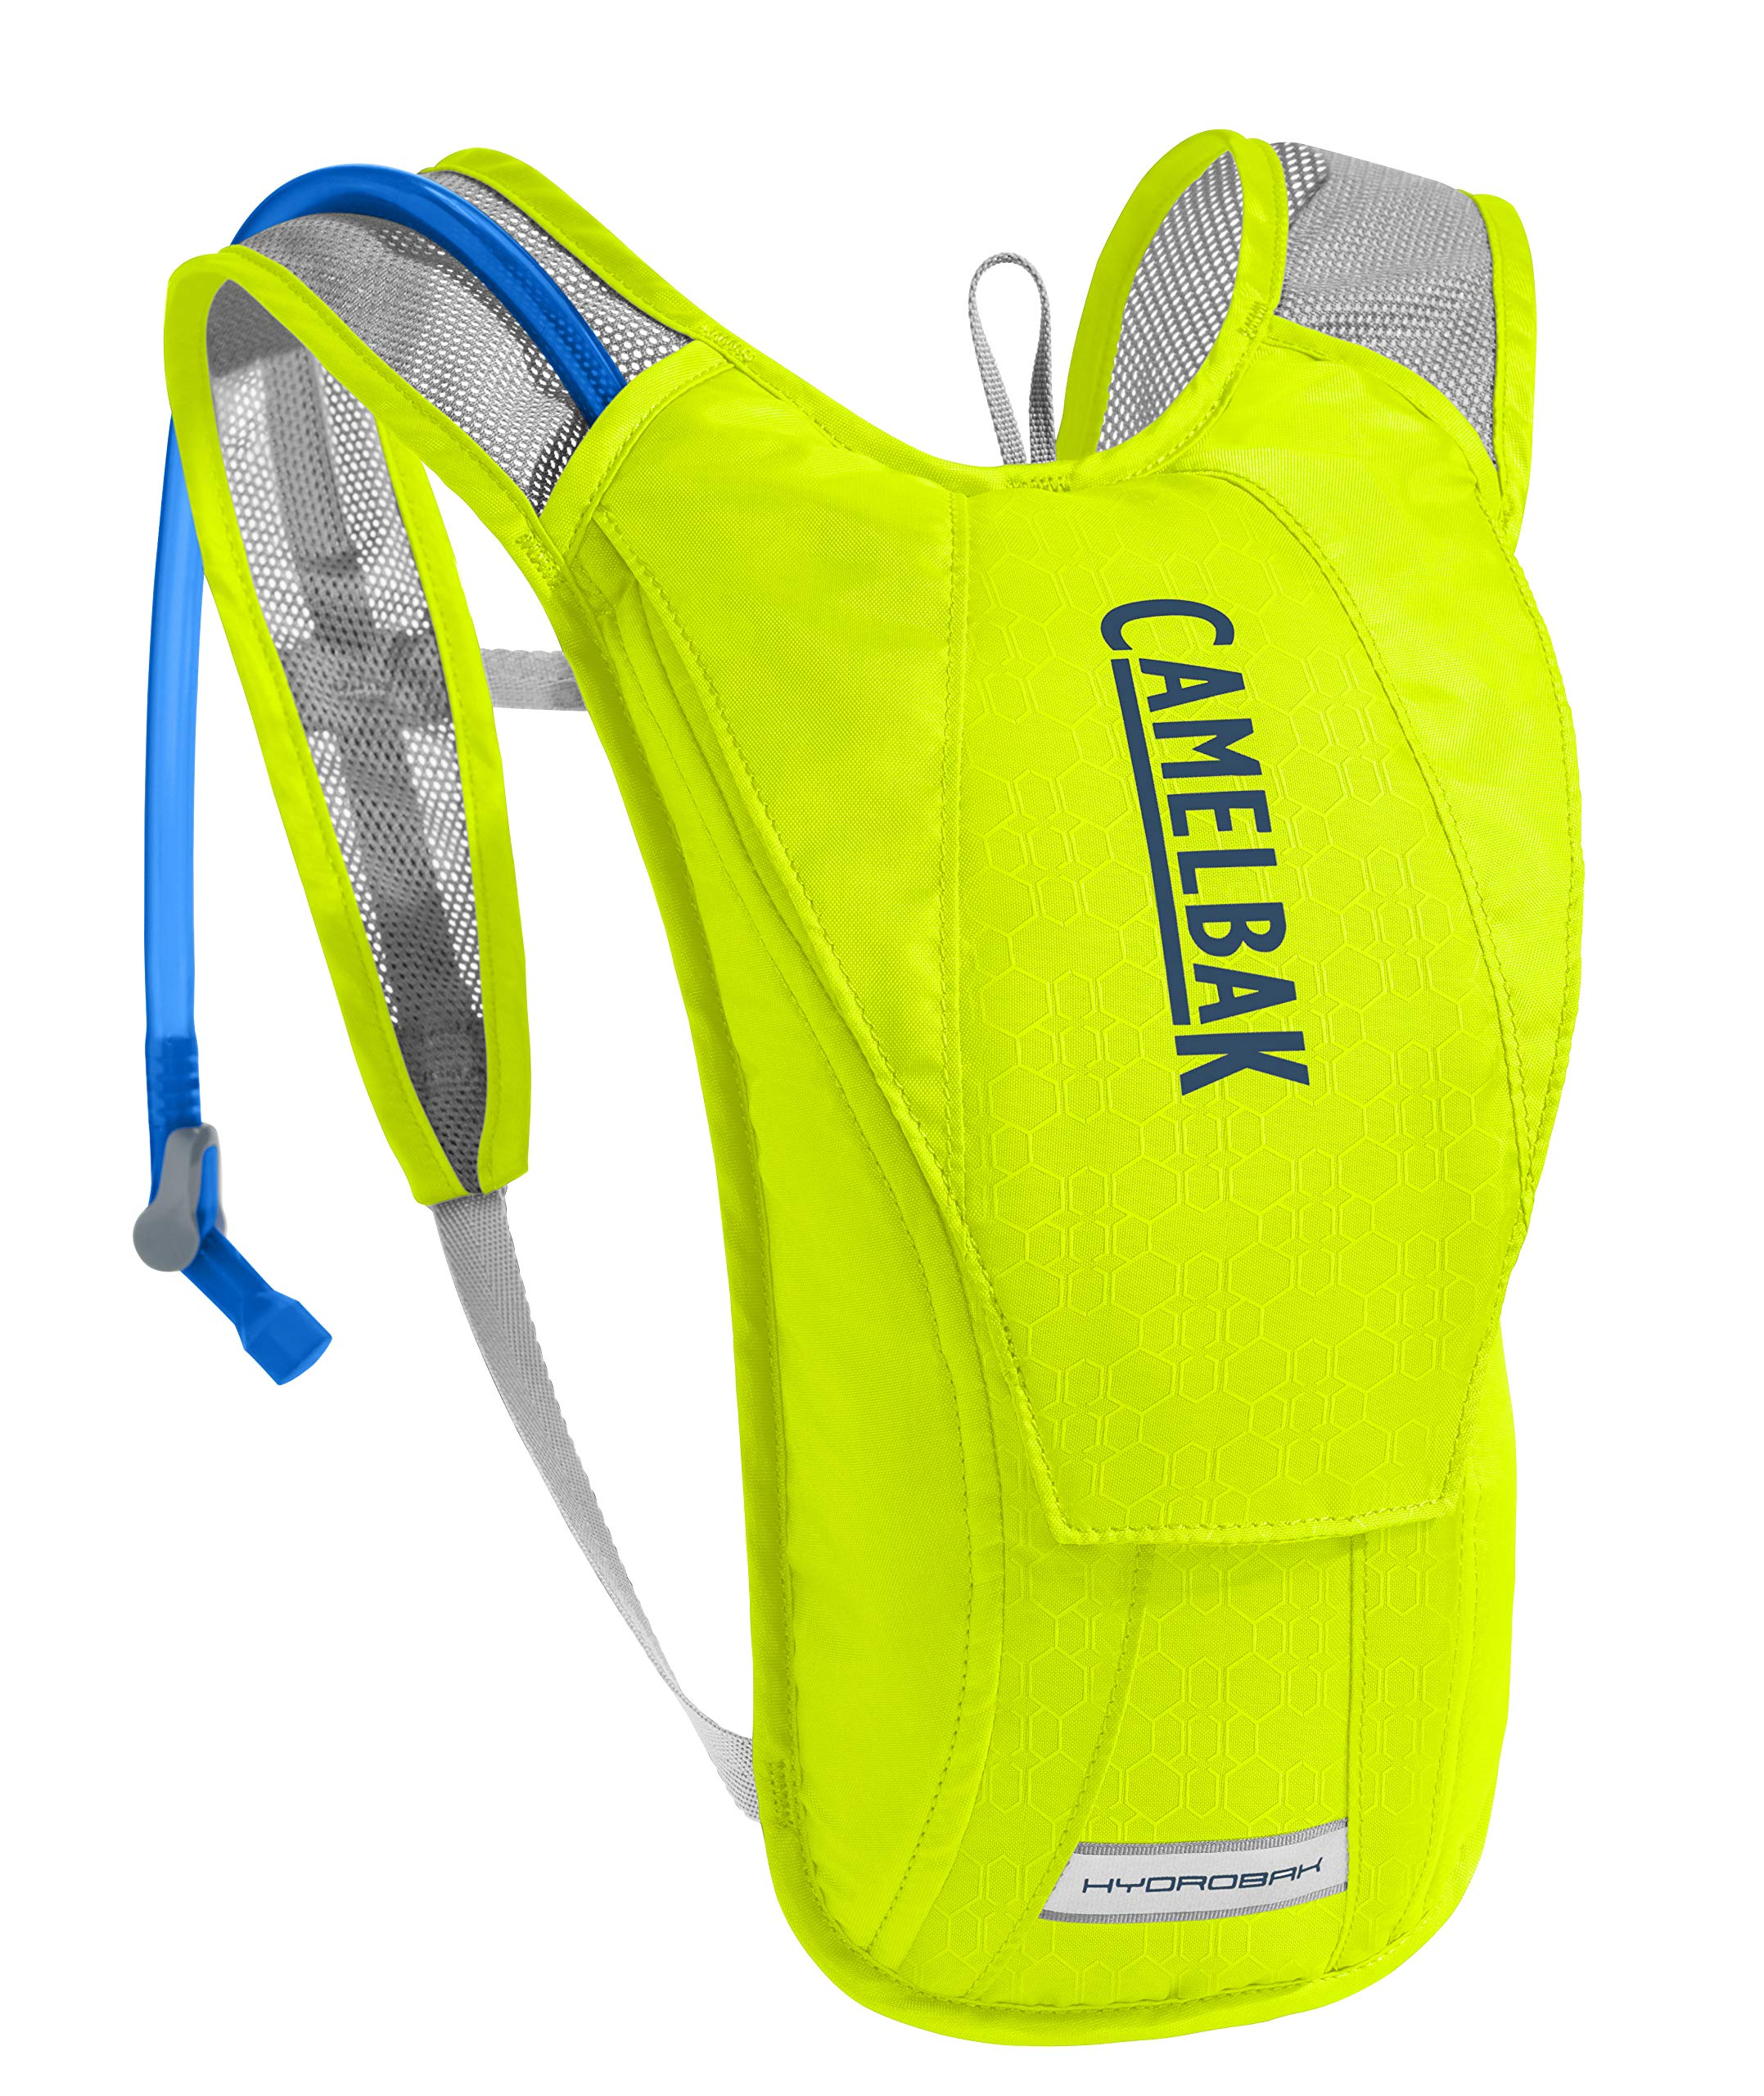 CamelBak HydroBak 50 oz, Safety Yellow/Navy, One Size